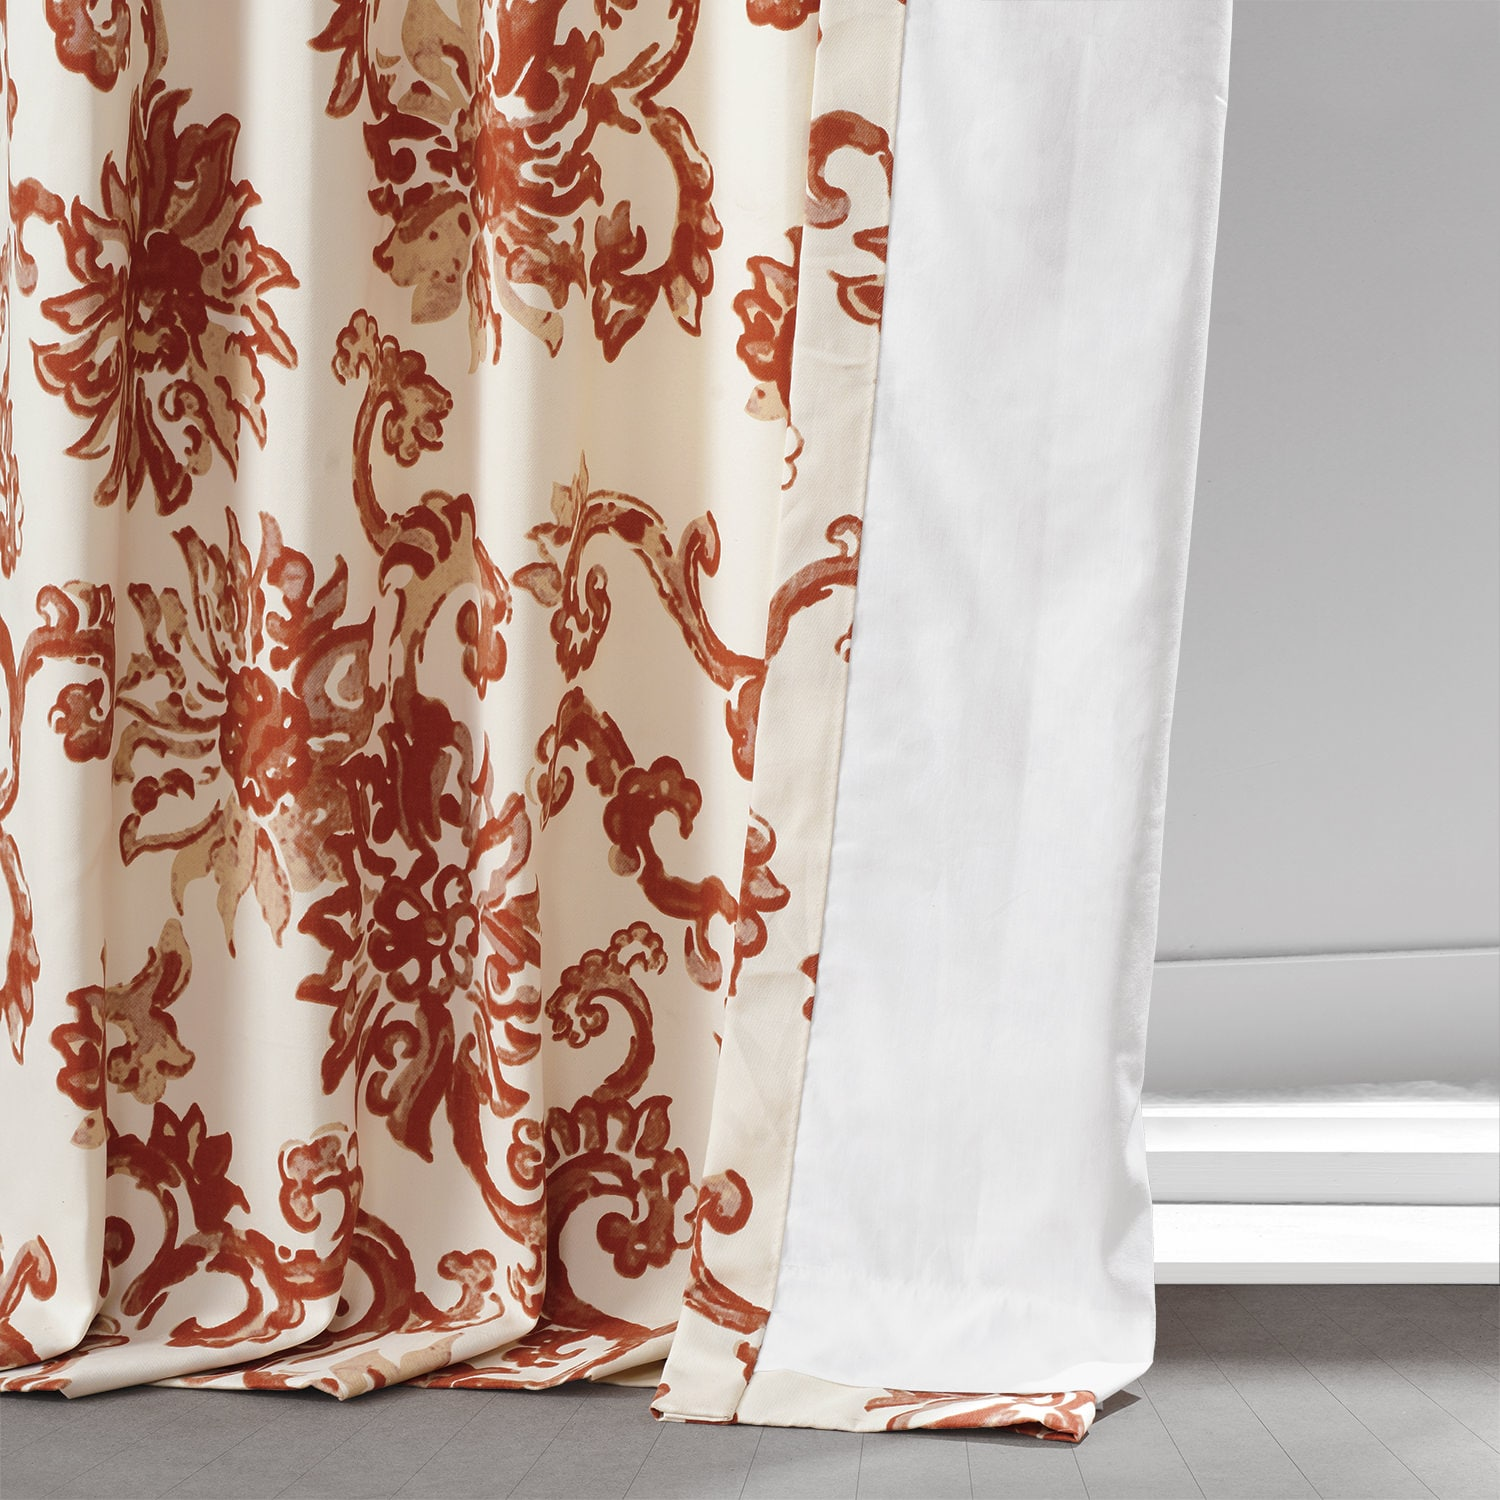 Indonesian Rust Printed Cotton Twill Curtain